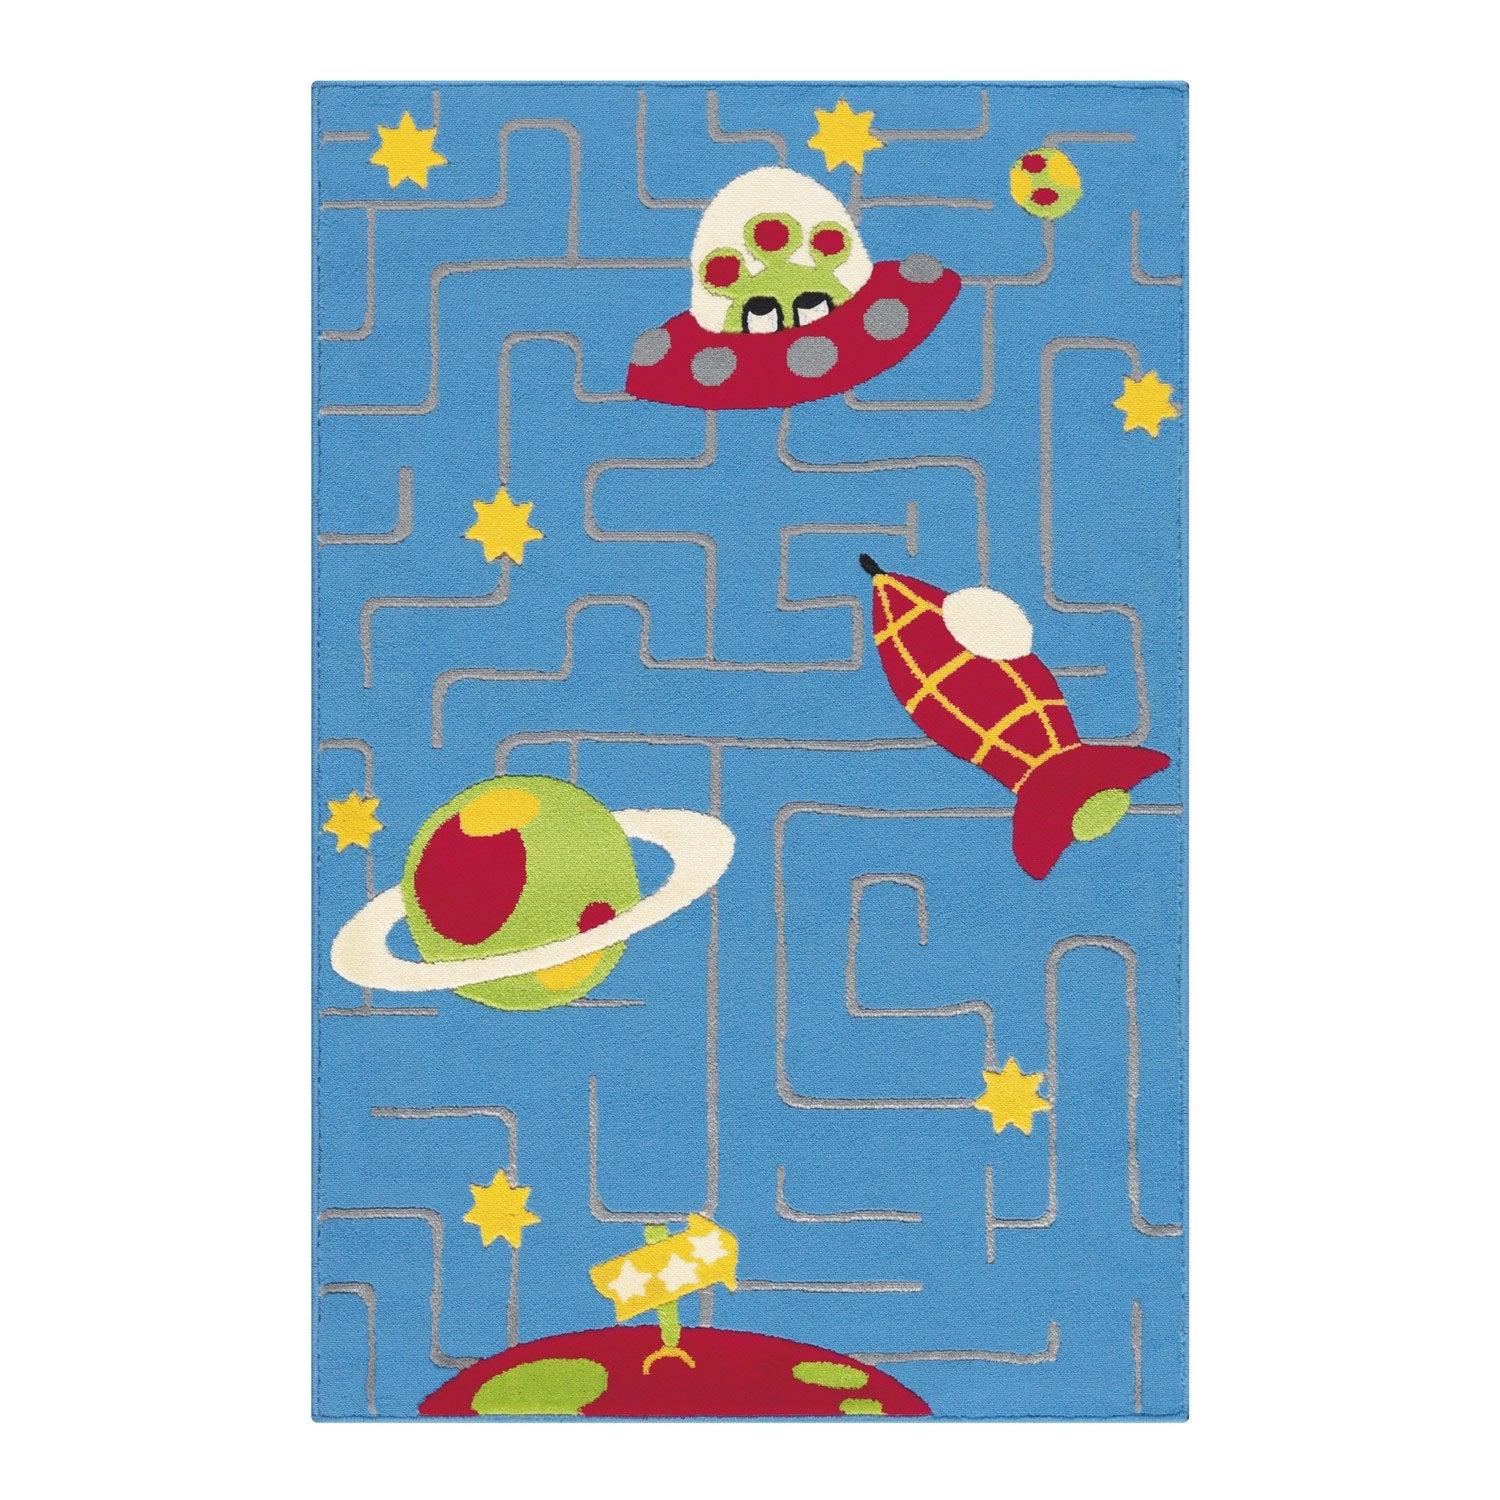 tapis enfant velours plan 232 tes multicolore 150x100 cm leroy merlin